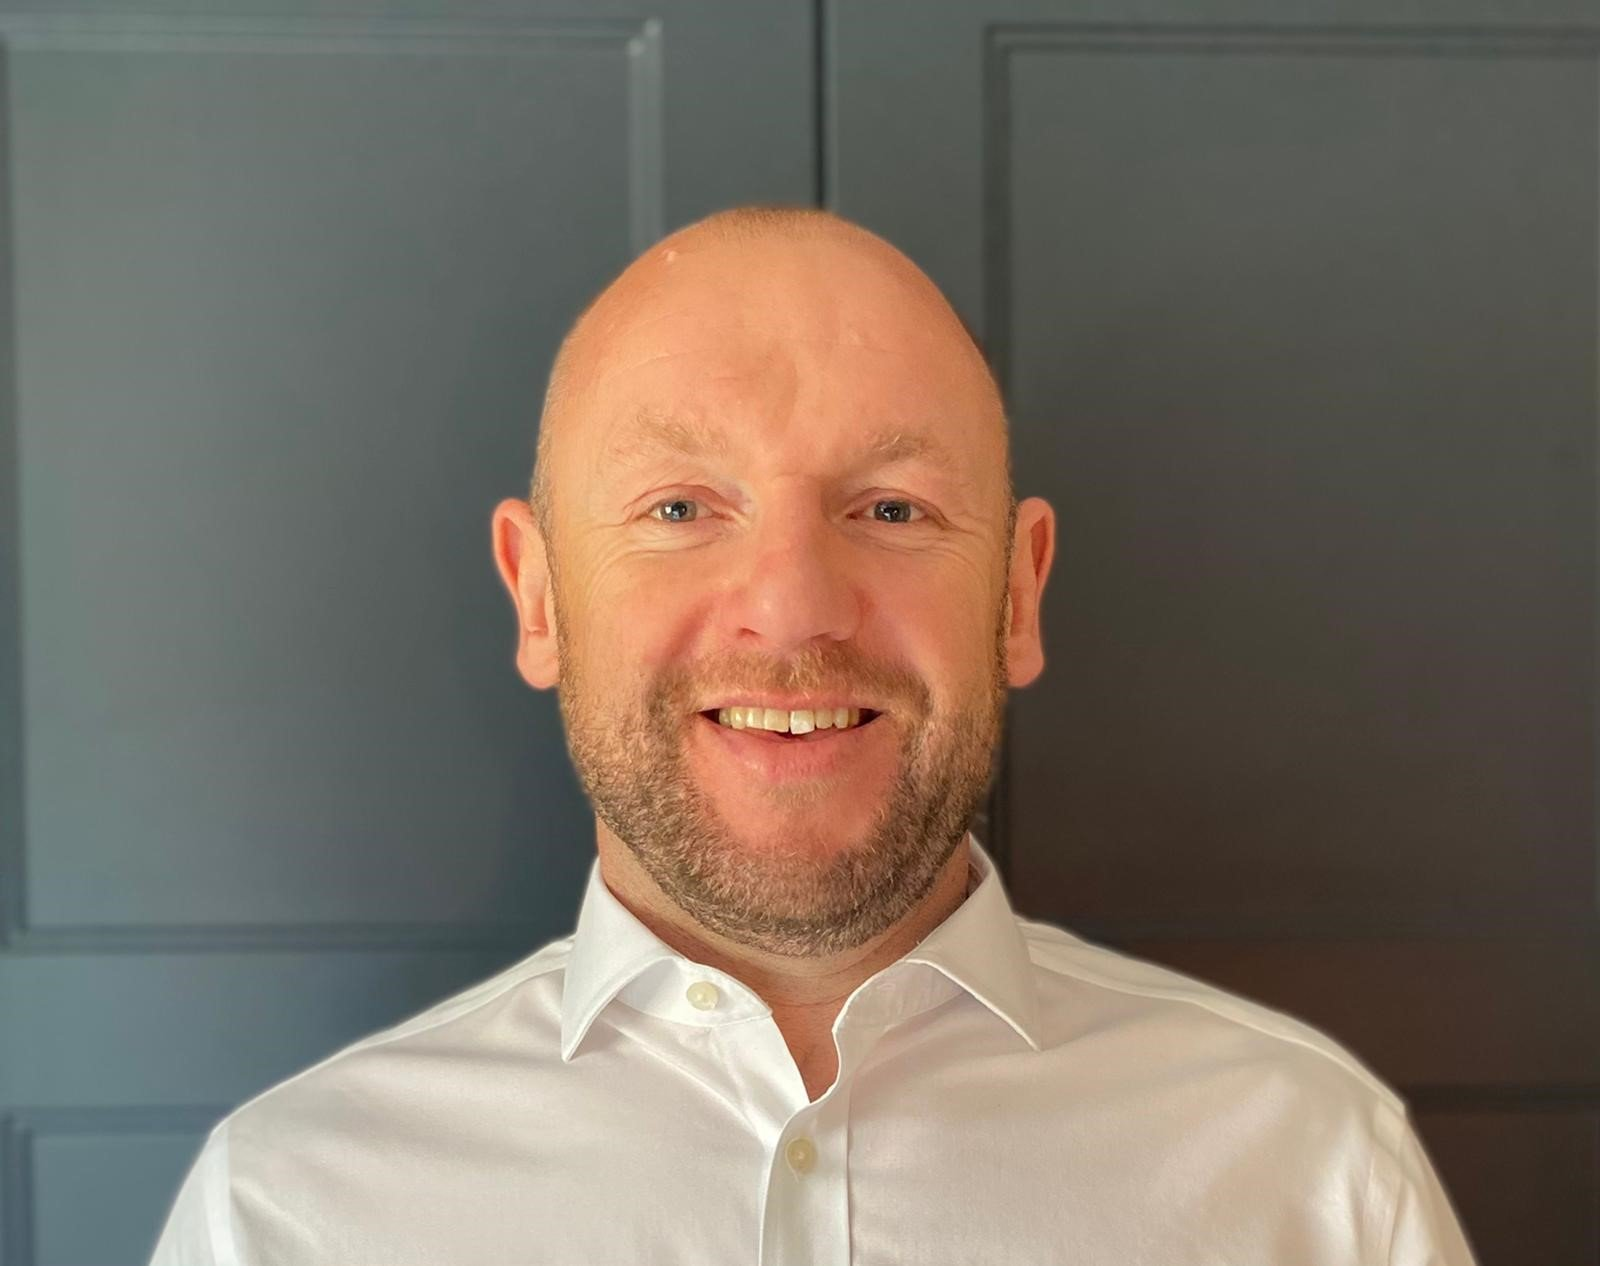 Parker Technical Services appoints new regional director to support growth.